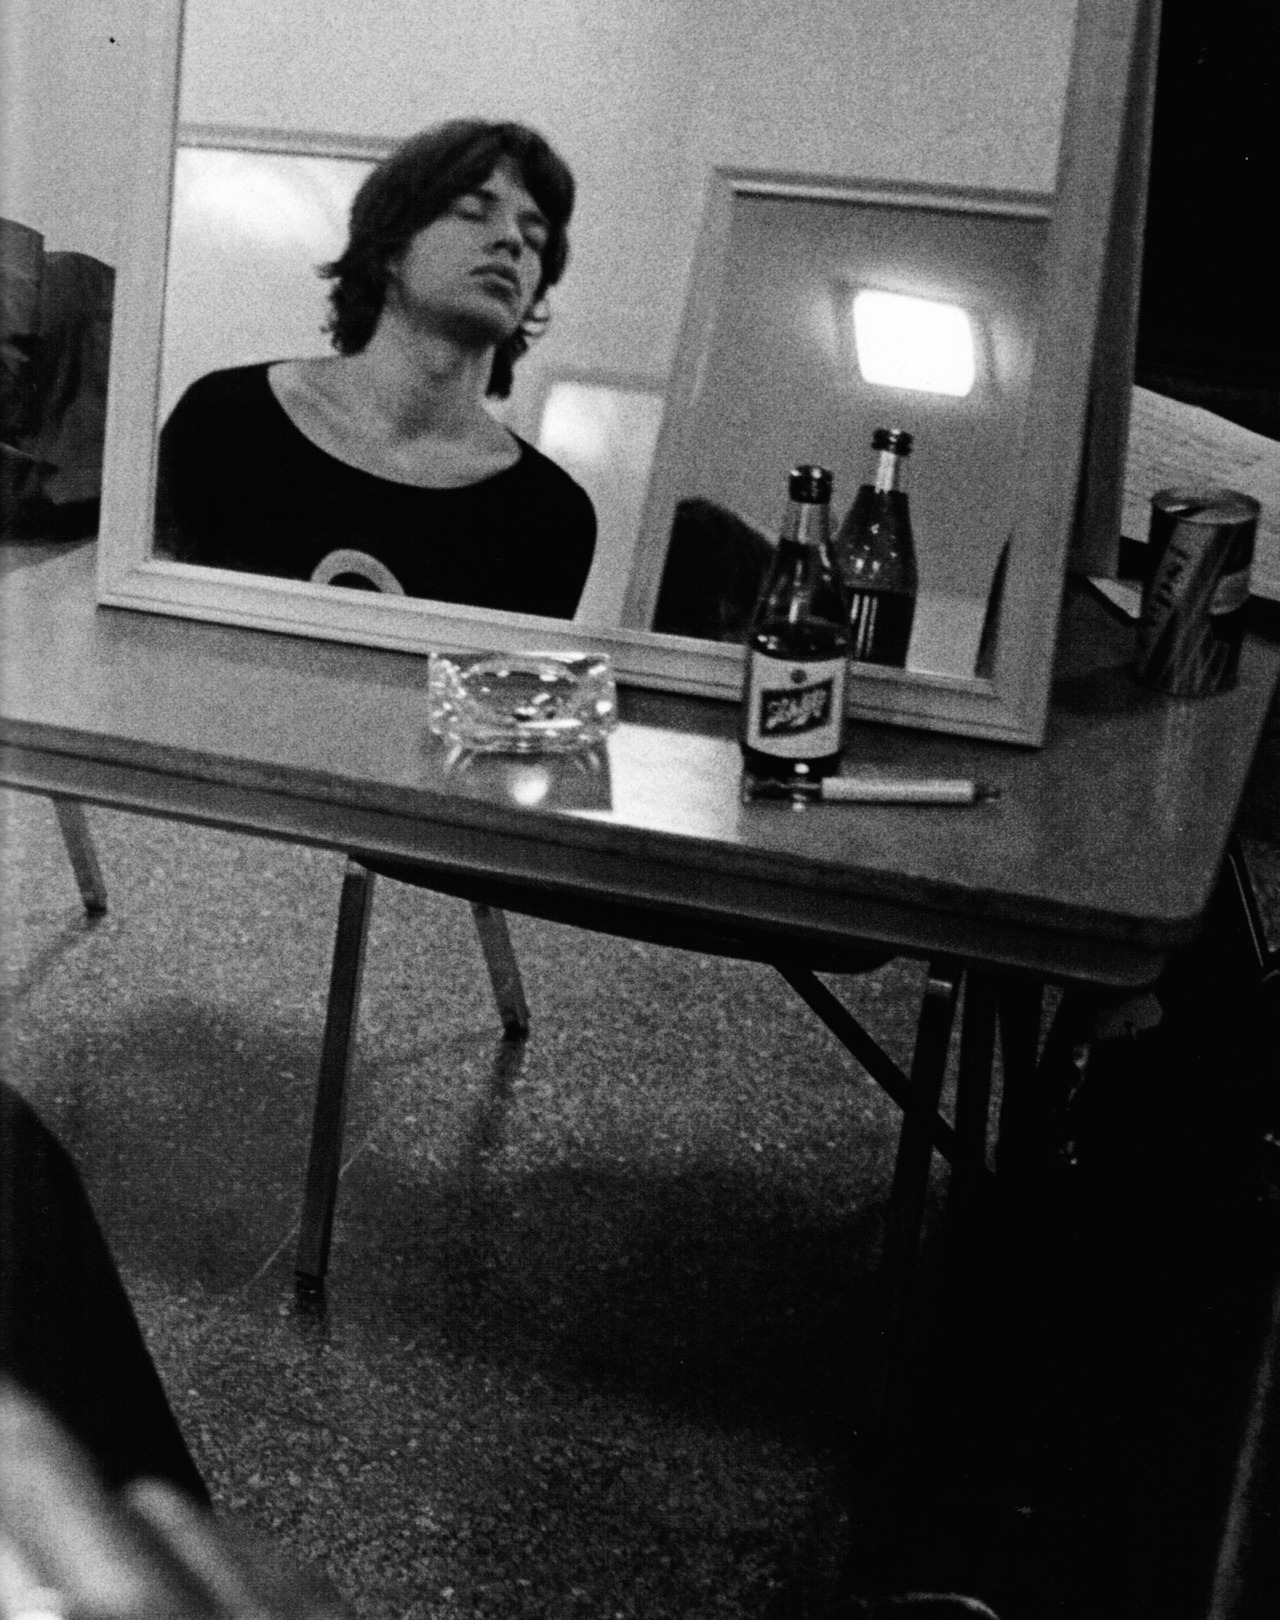 MICK JAGGER SI BEAU EN SON MIROIR (1969) keeflepuff:  Mick takes a break during the Stones' U.S. tour, November 1969.